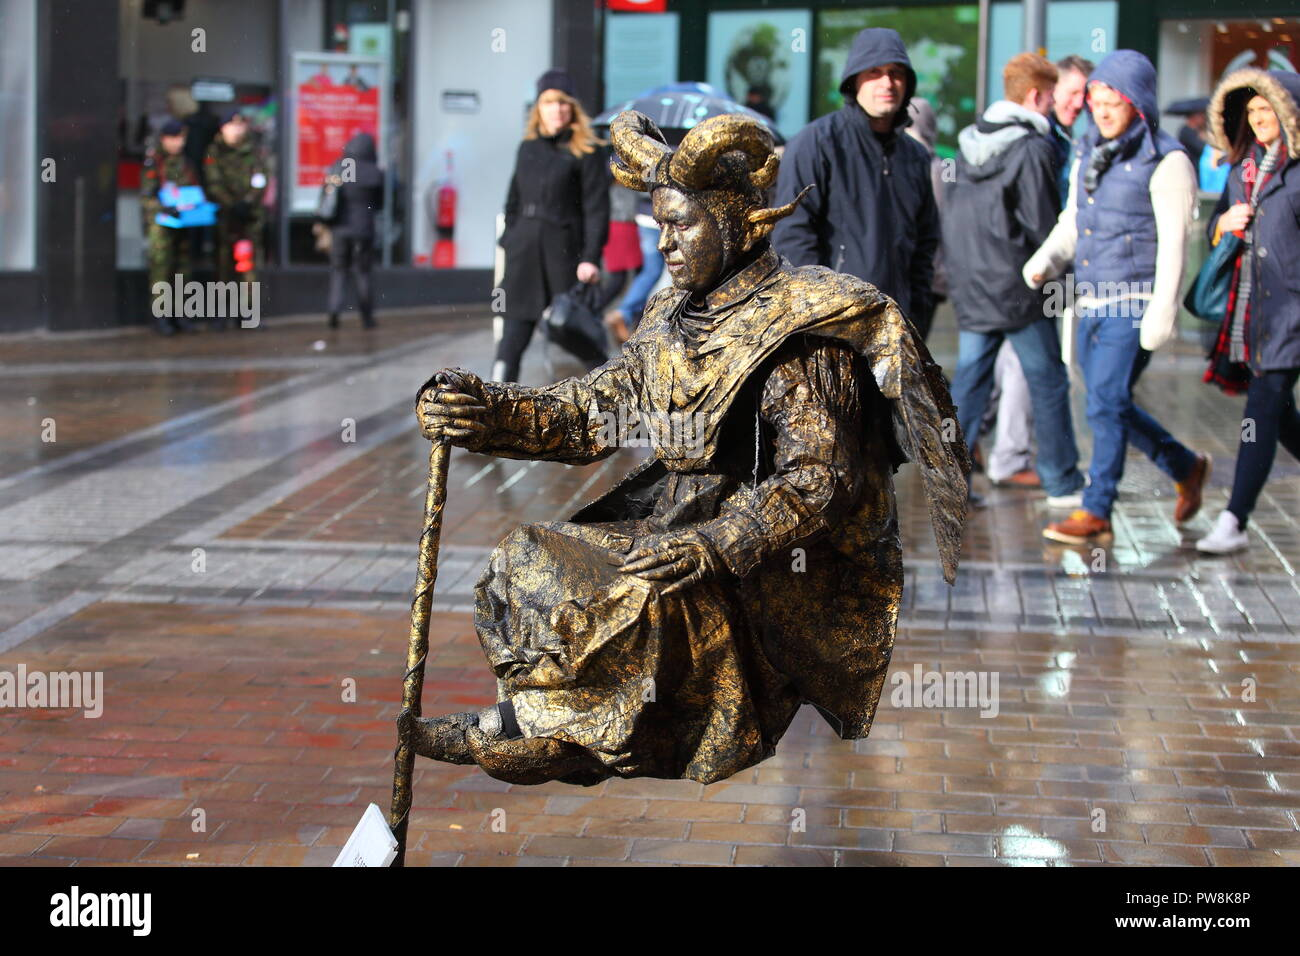 A living statue busker appears to be levitating on Briggate in Leeds - Stock Image